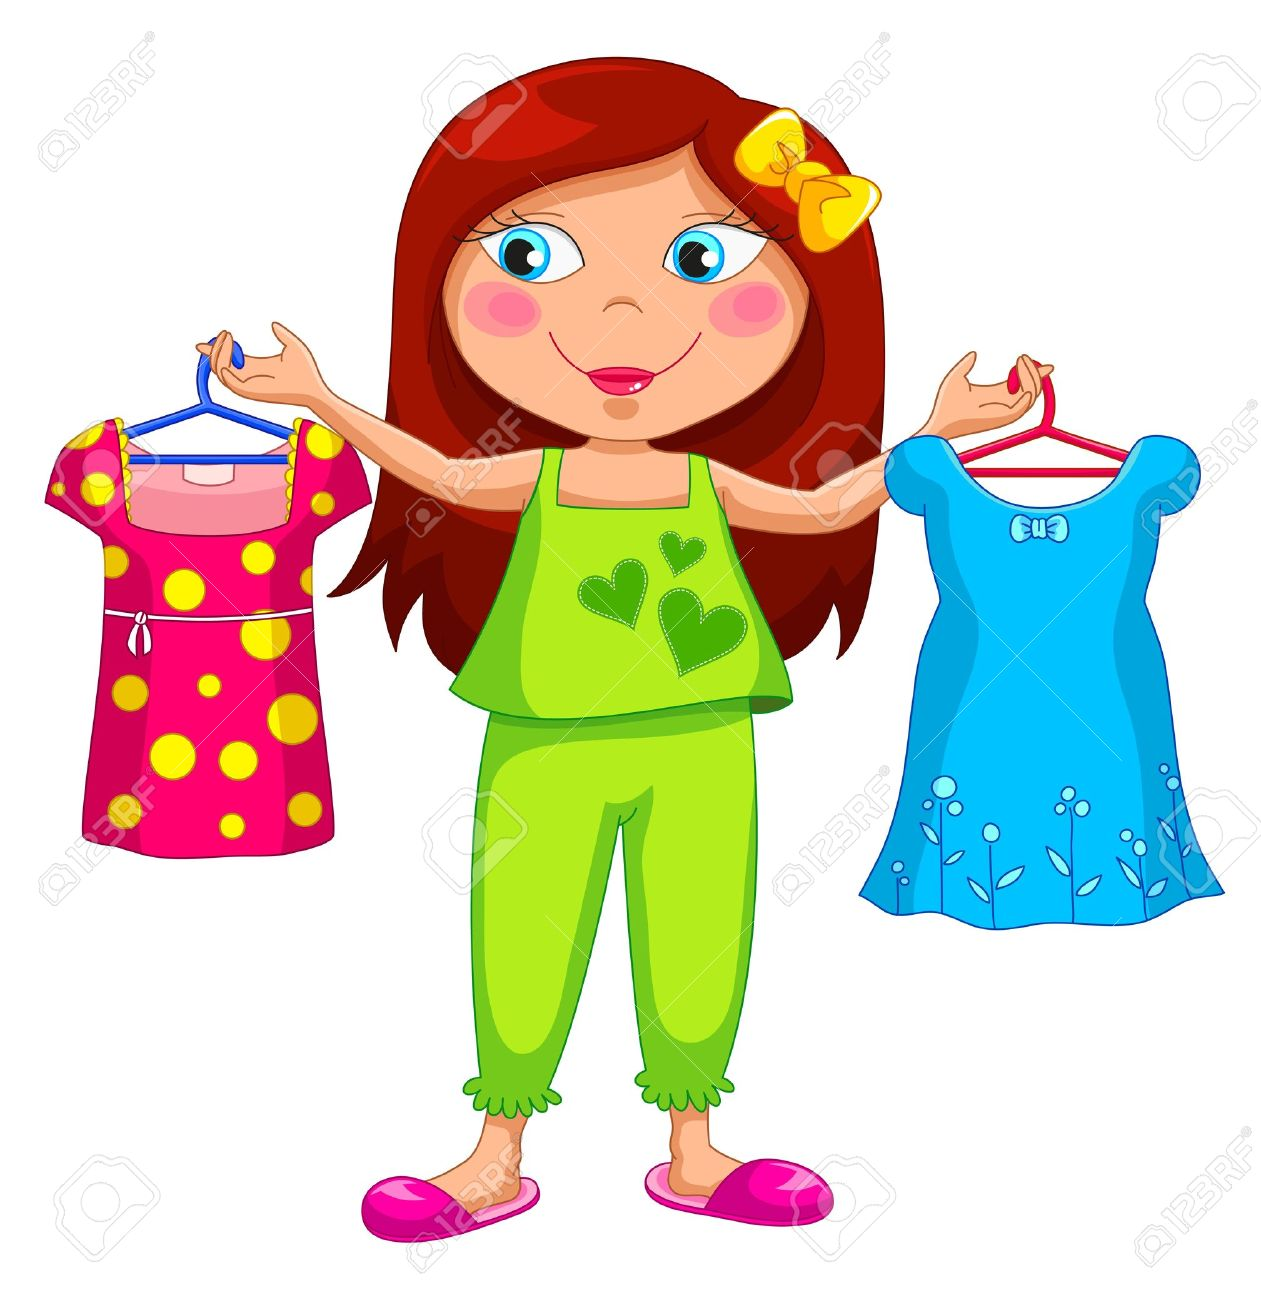 Wear clipart 20 free Cliparts   Download images on ...